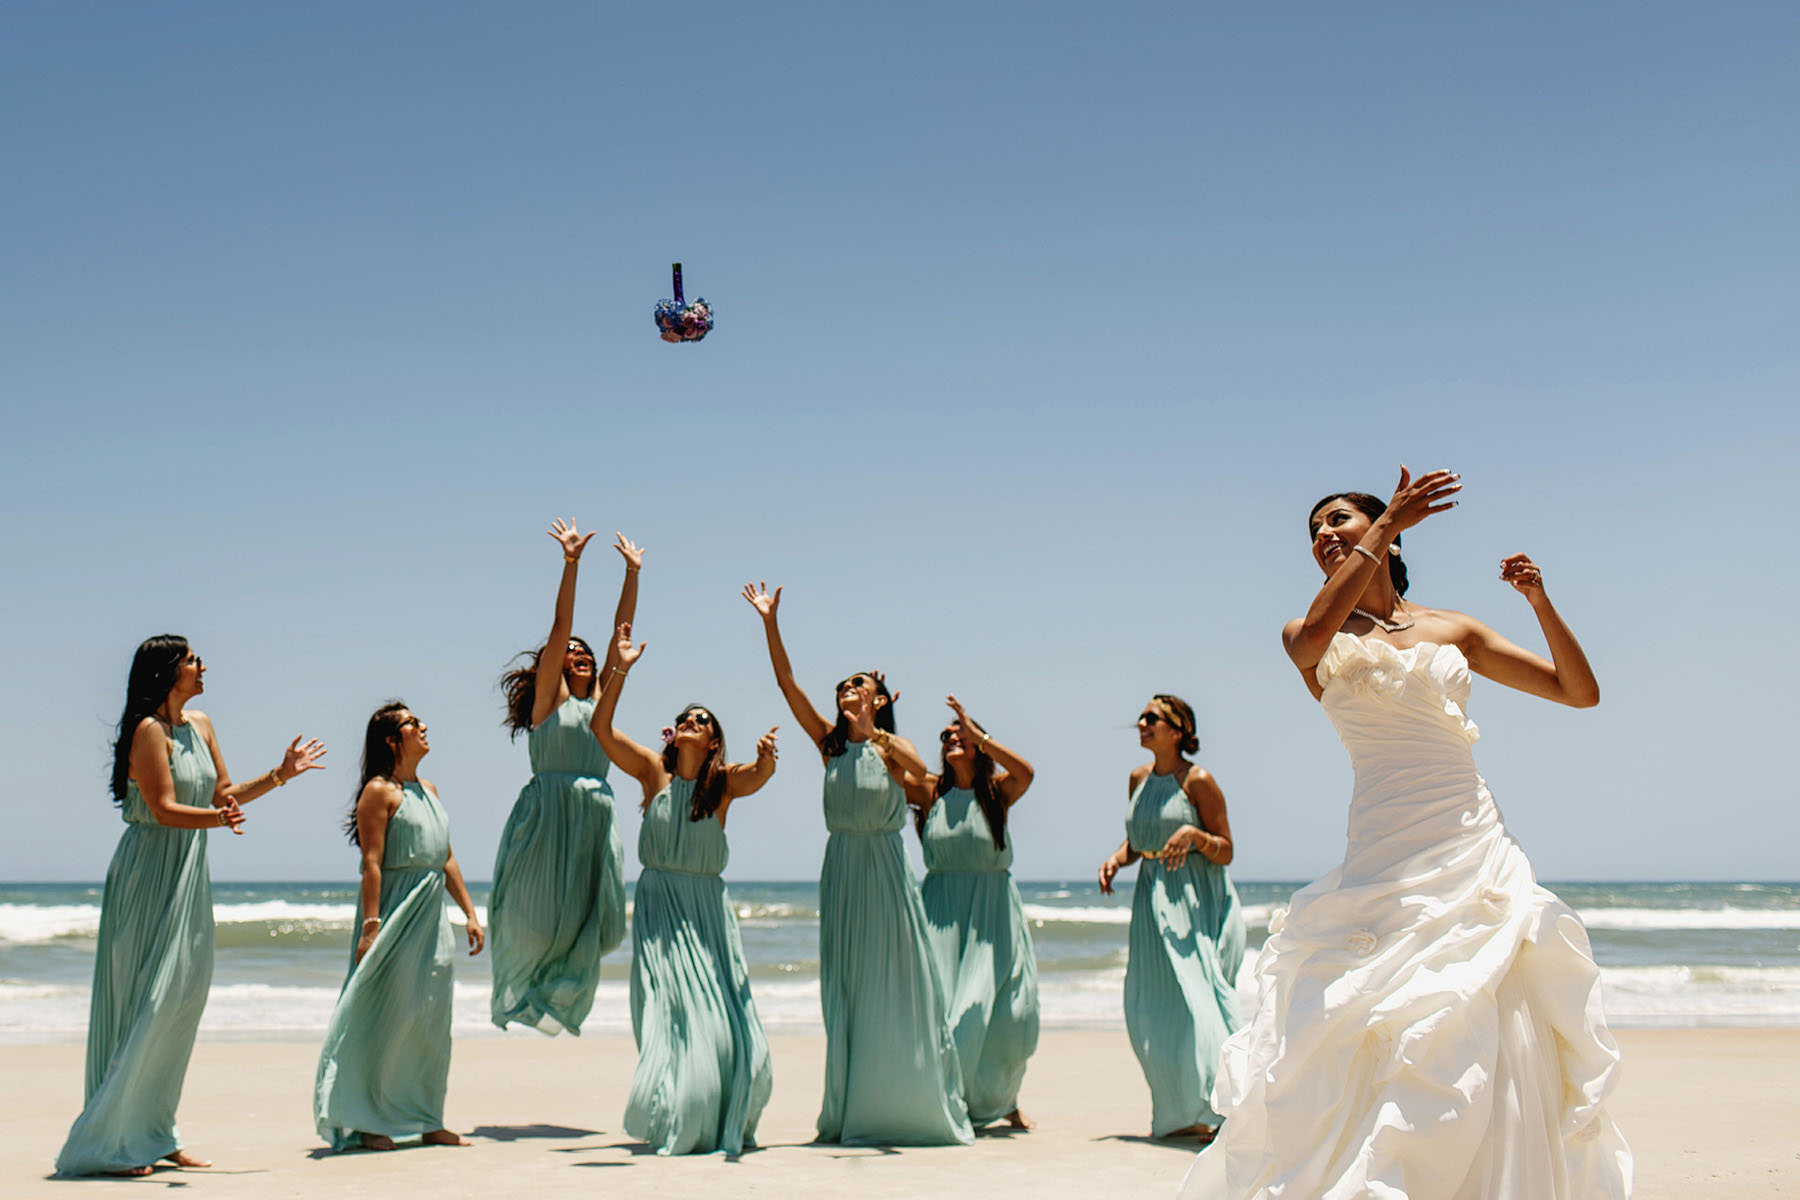 Bouquet toss on the beach - photo by F5 Photography